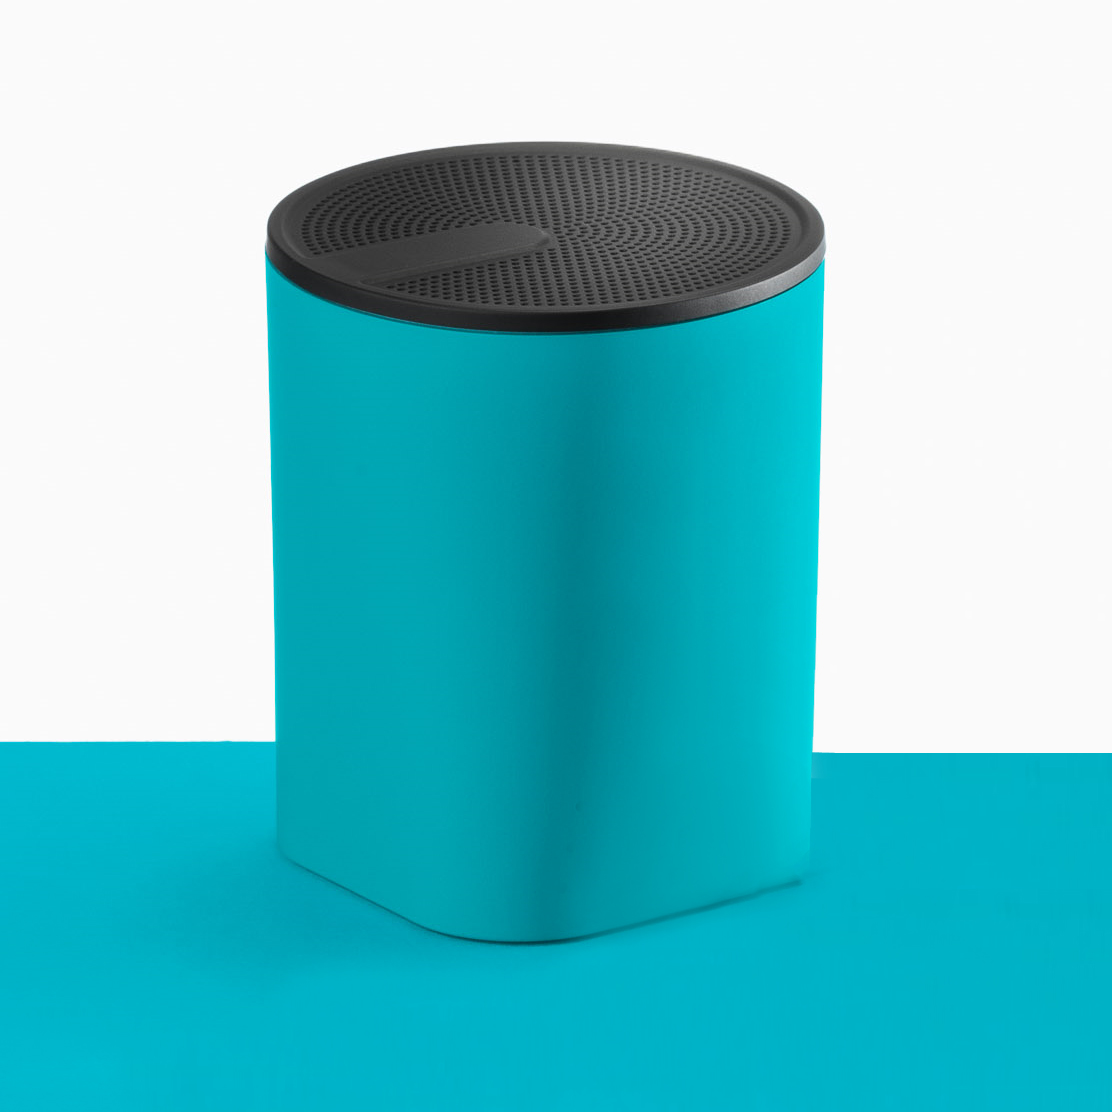 Turquoise Colour Sound Compact Speaker